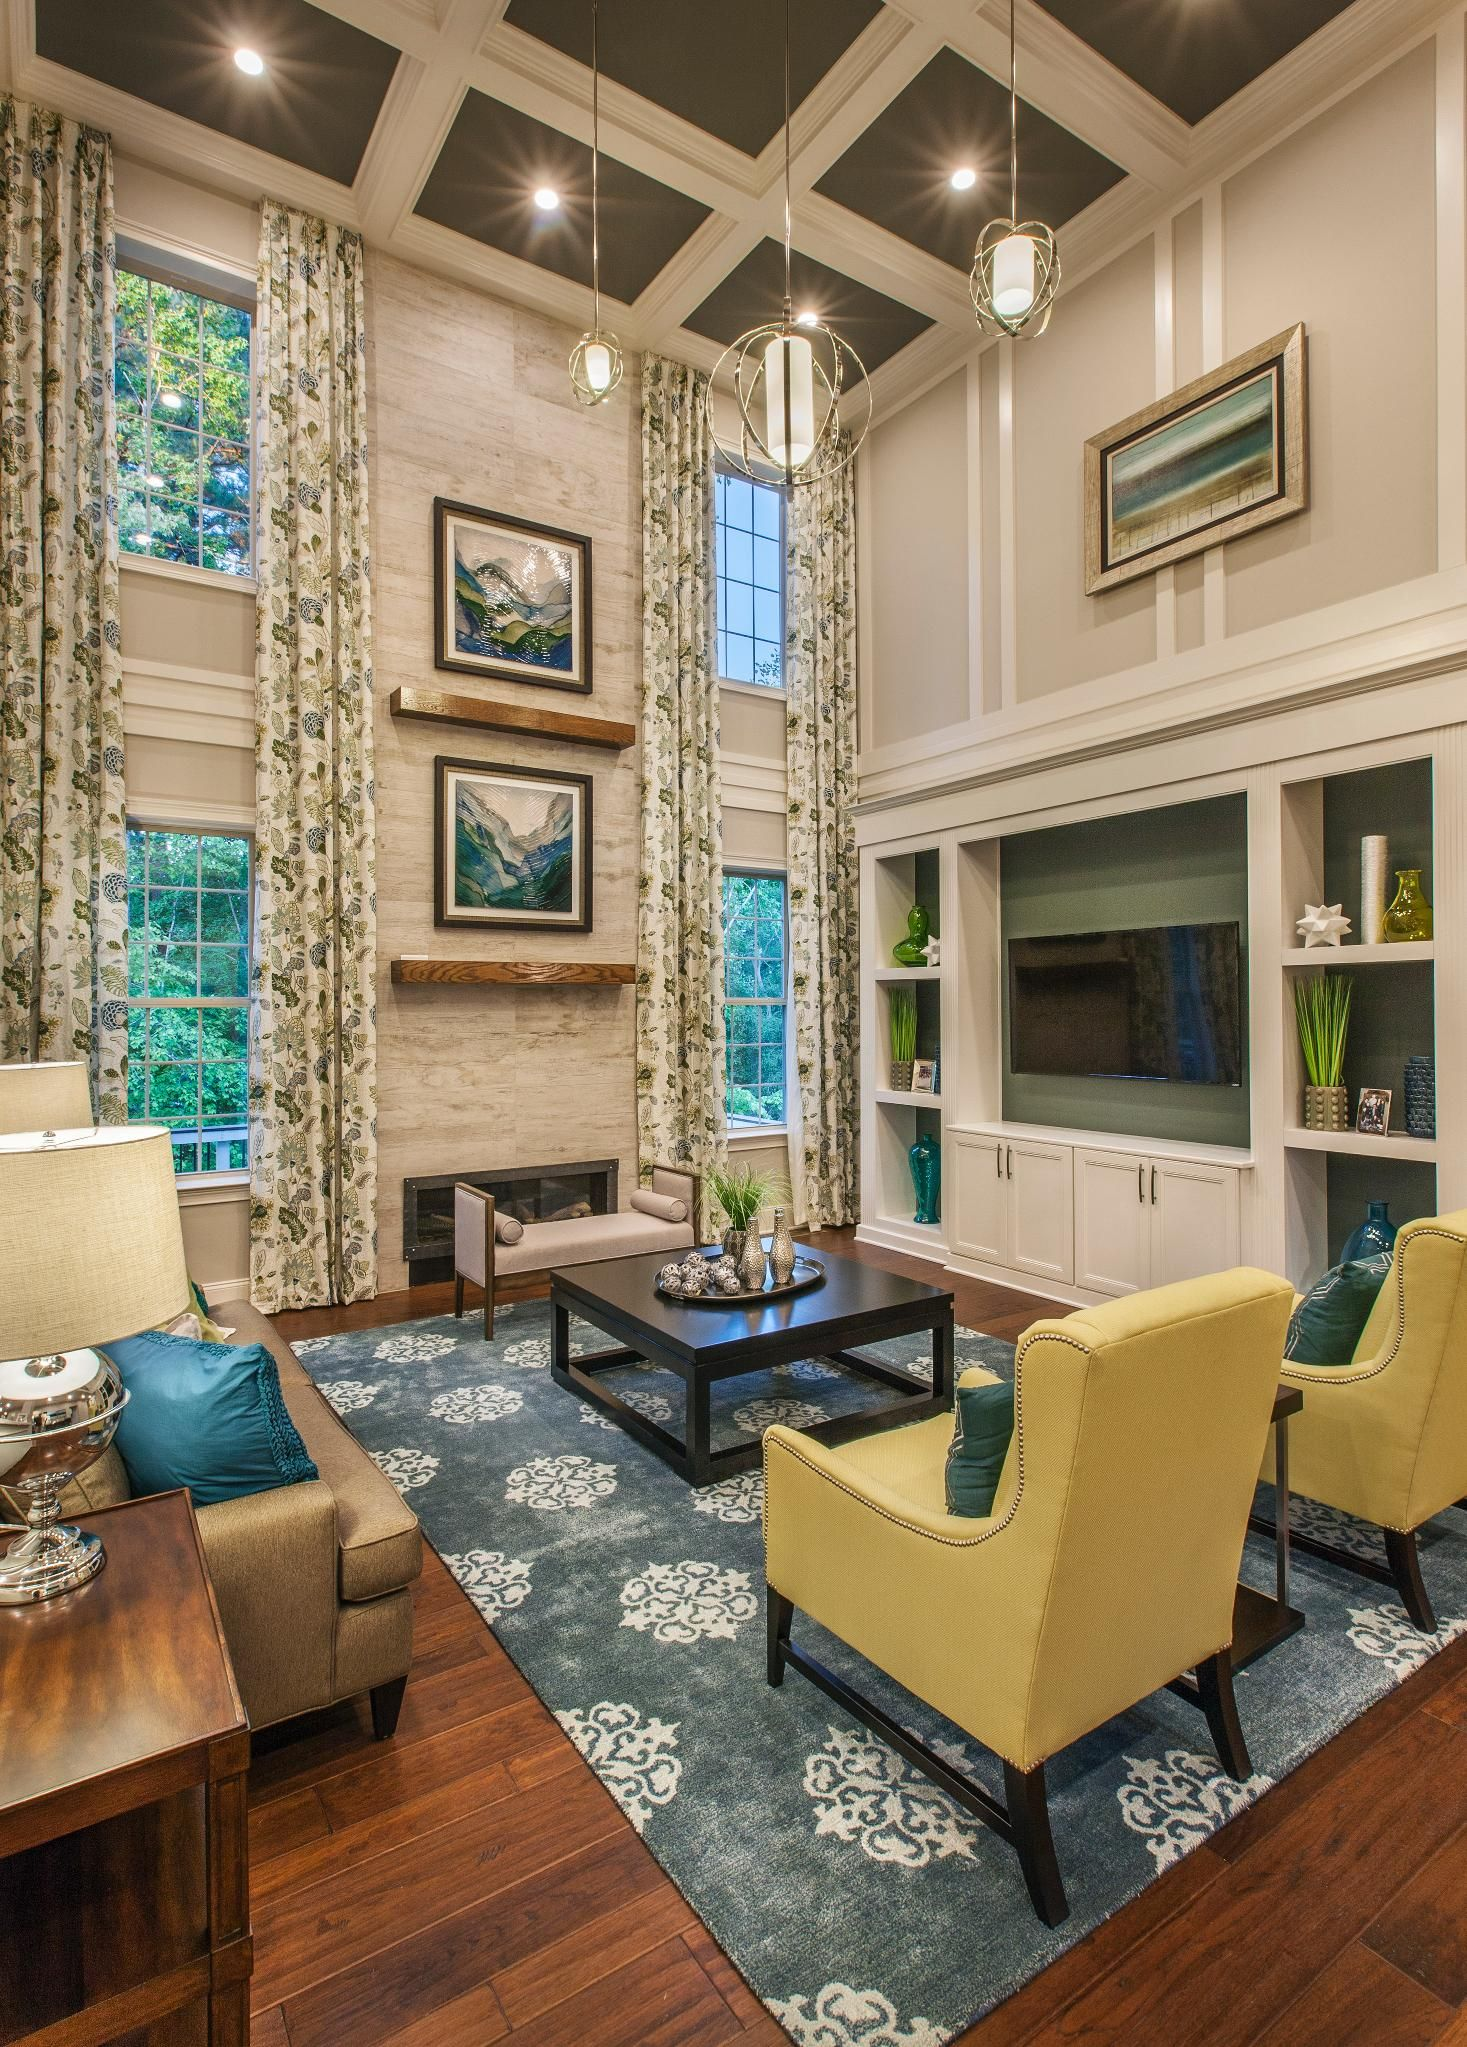 Toll Brothers at Hasentree, NC | Family Rooms | Pinterest ...